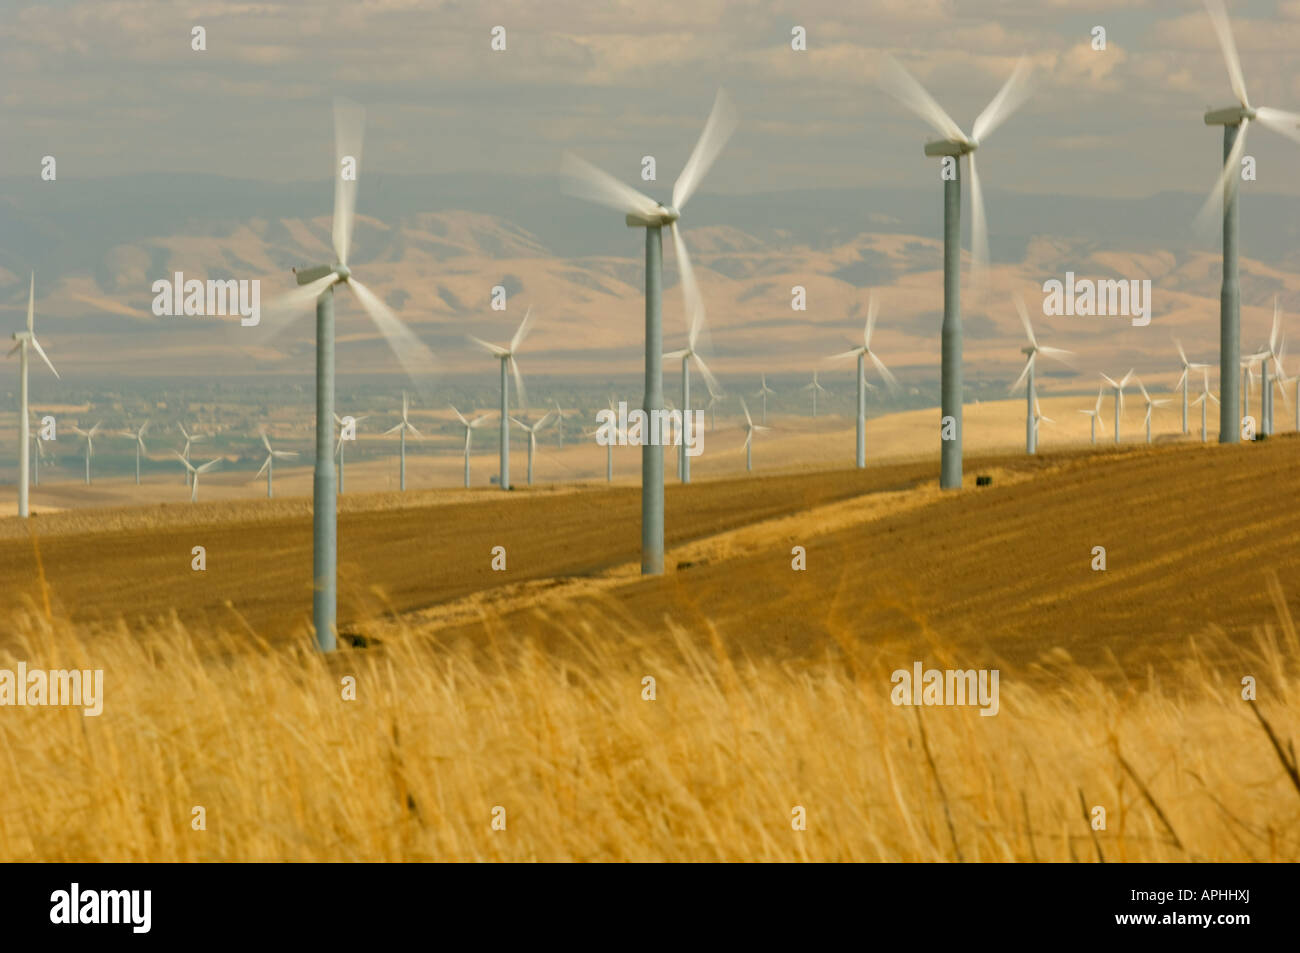 The propellers of wind turbines spin in the wind as they generate electricity in southeast Washington state - Stock Image